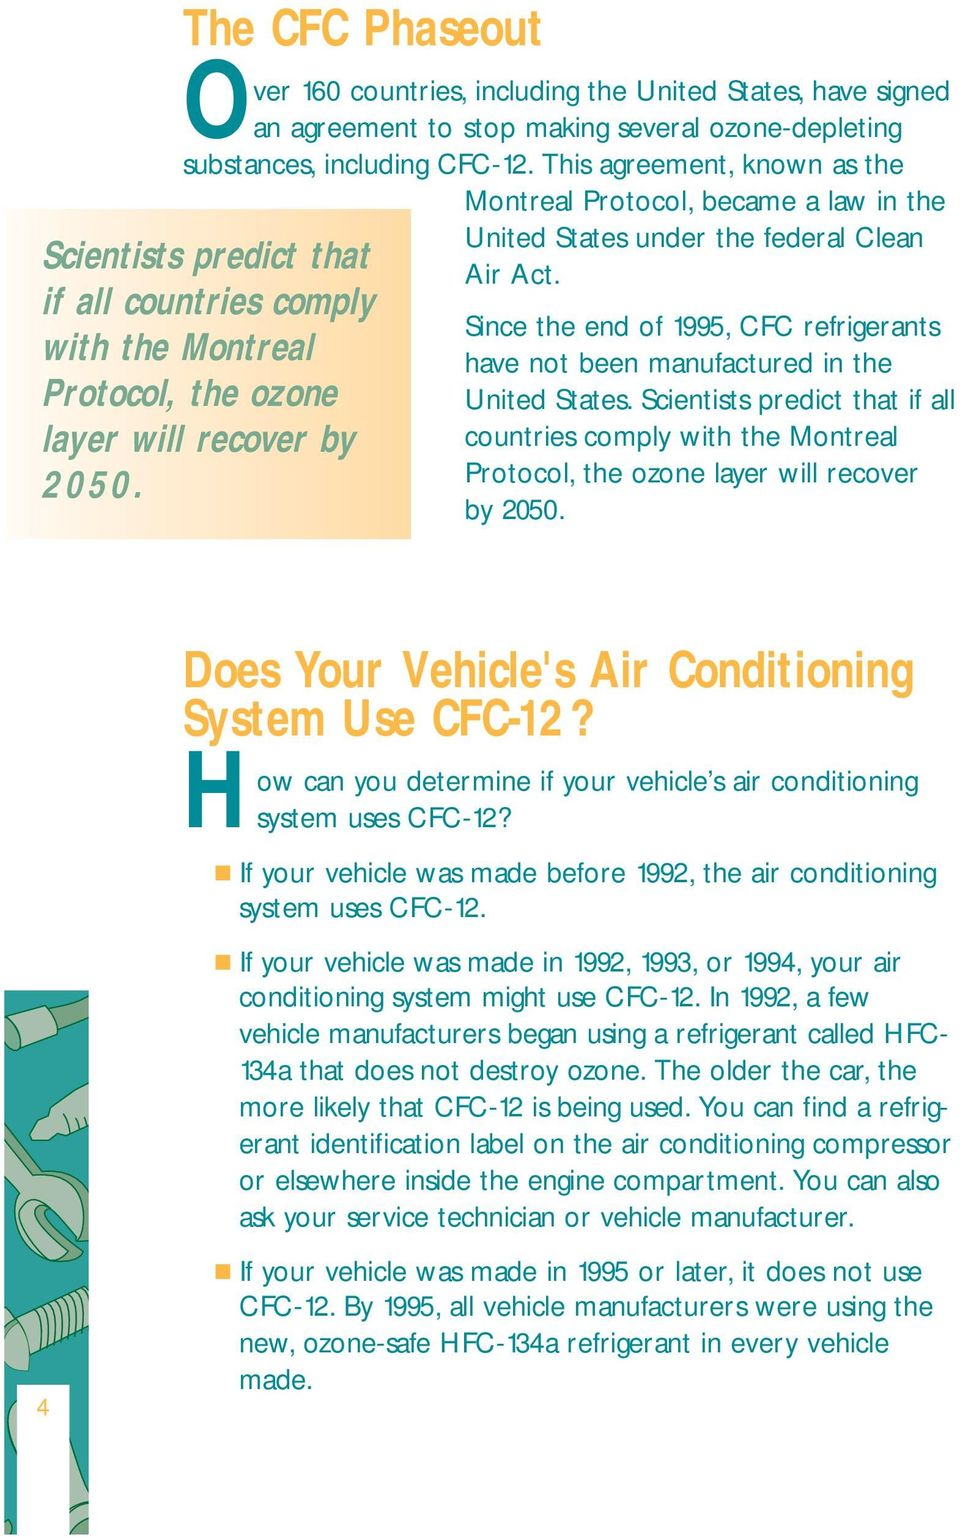 United States under the federal Clean Air Act. Since the end of 1995, CFC refrigerants have not been manufactured in the United States.